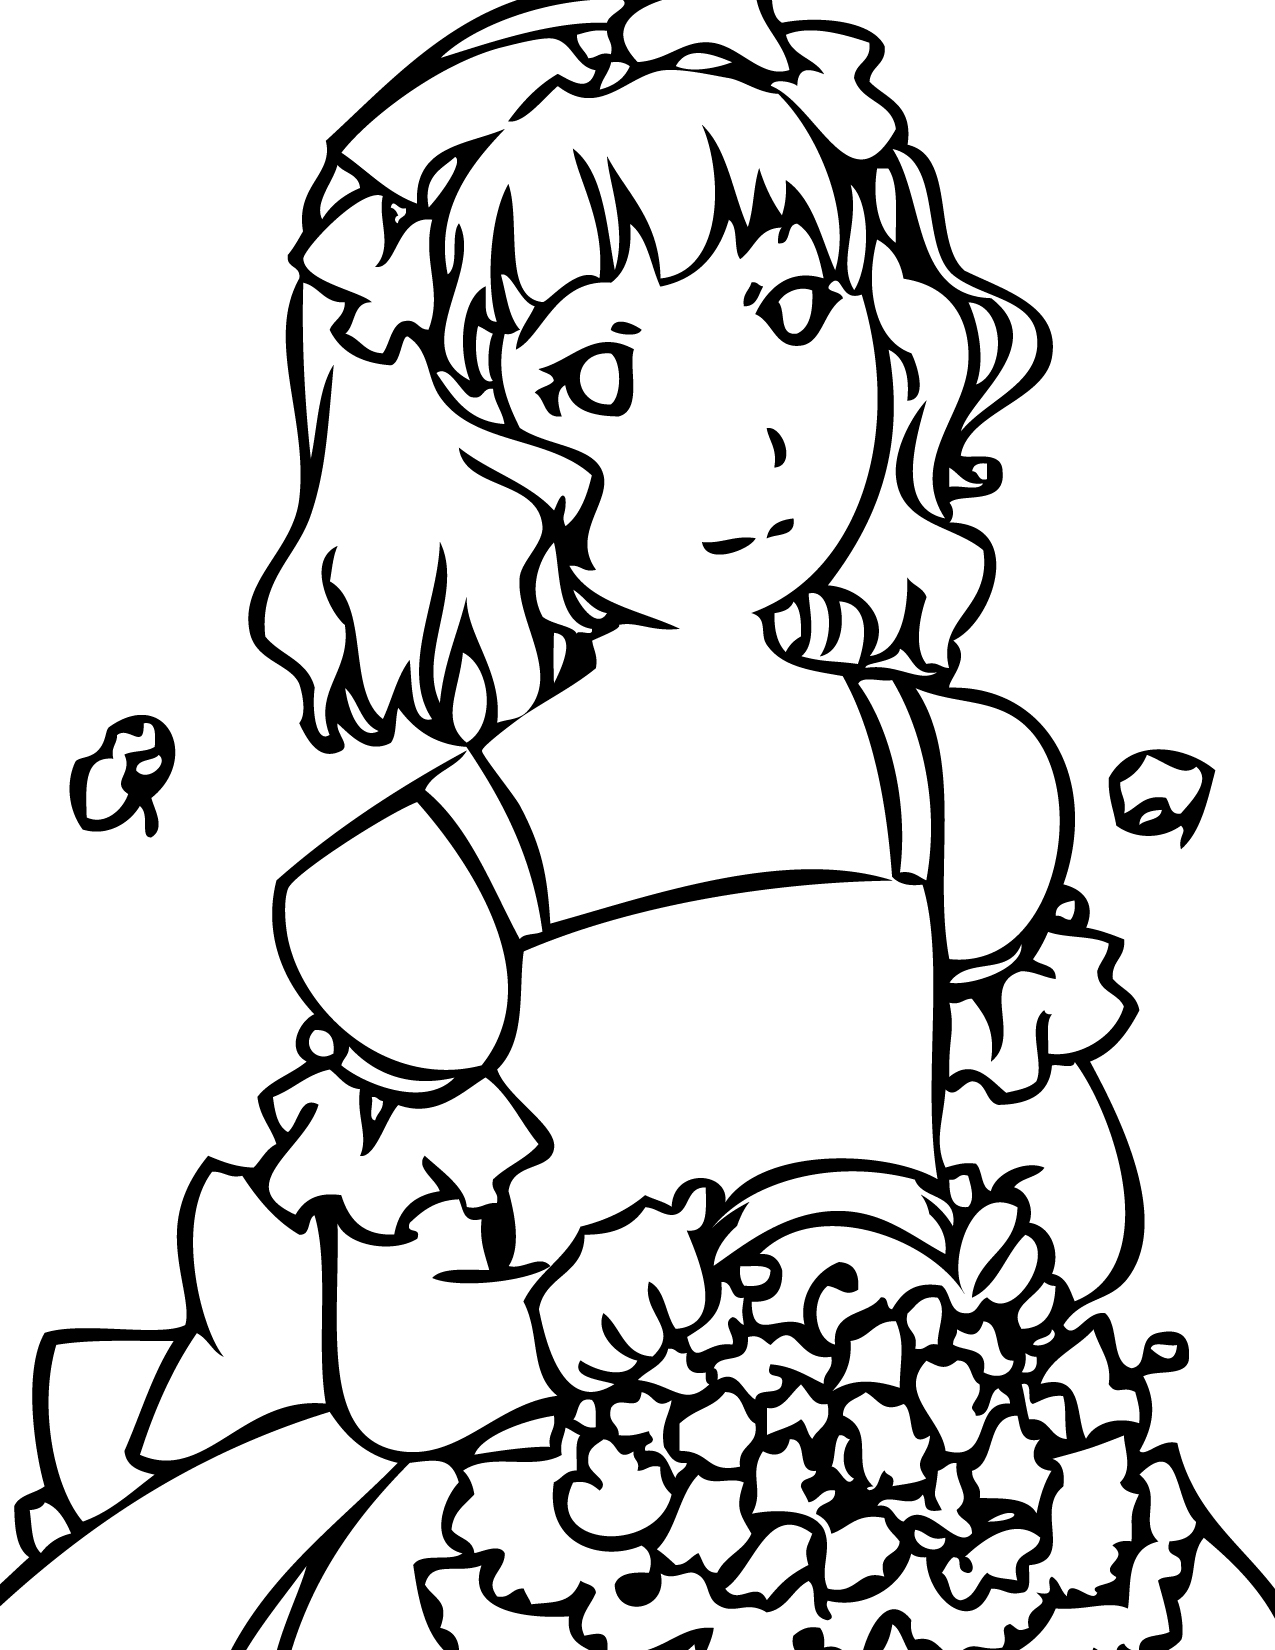 girls planting flowers coloring pages - photo#9